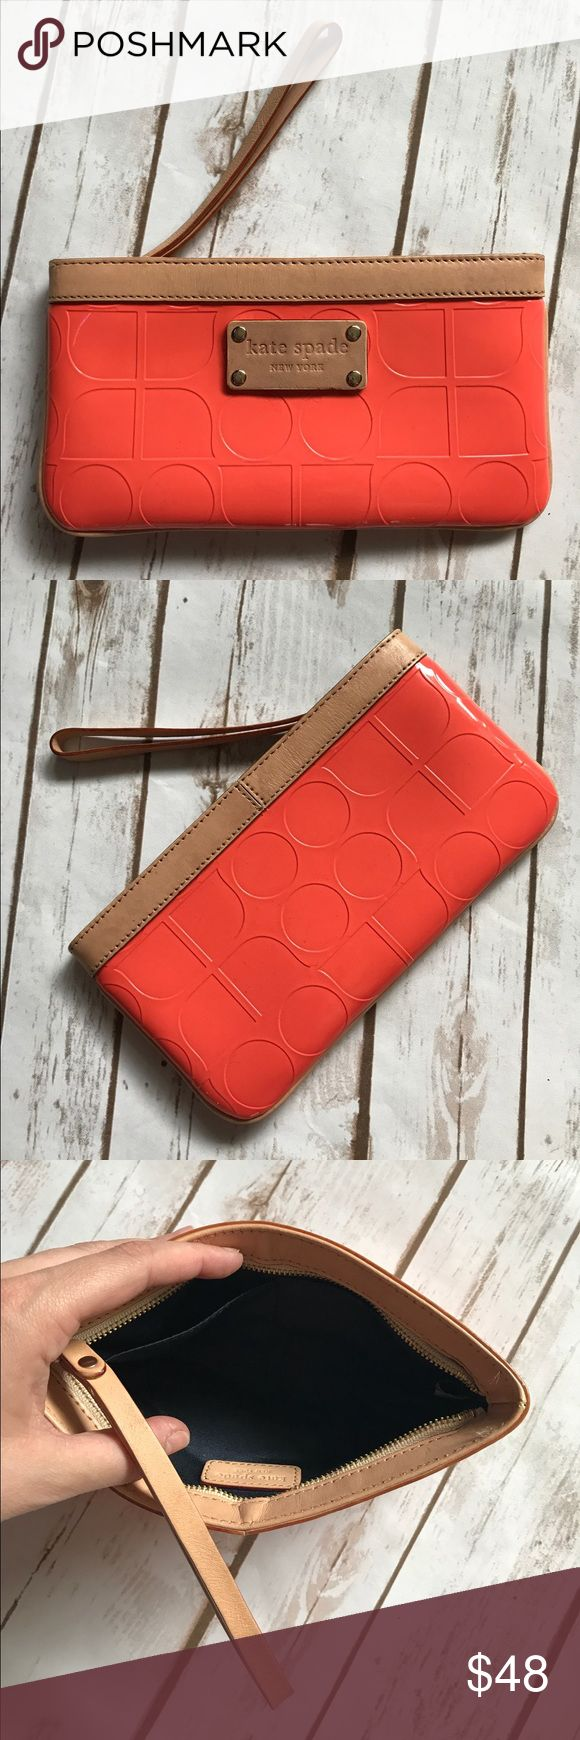 KATE SPADE Orange Clutch Orange clutch from Kate Spade. Taupe accent color. Clean and lovely, excellent used condition. kate spade Bags Clutches & Wristlets